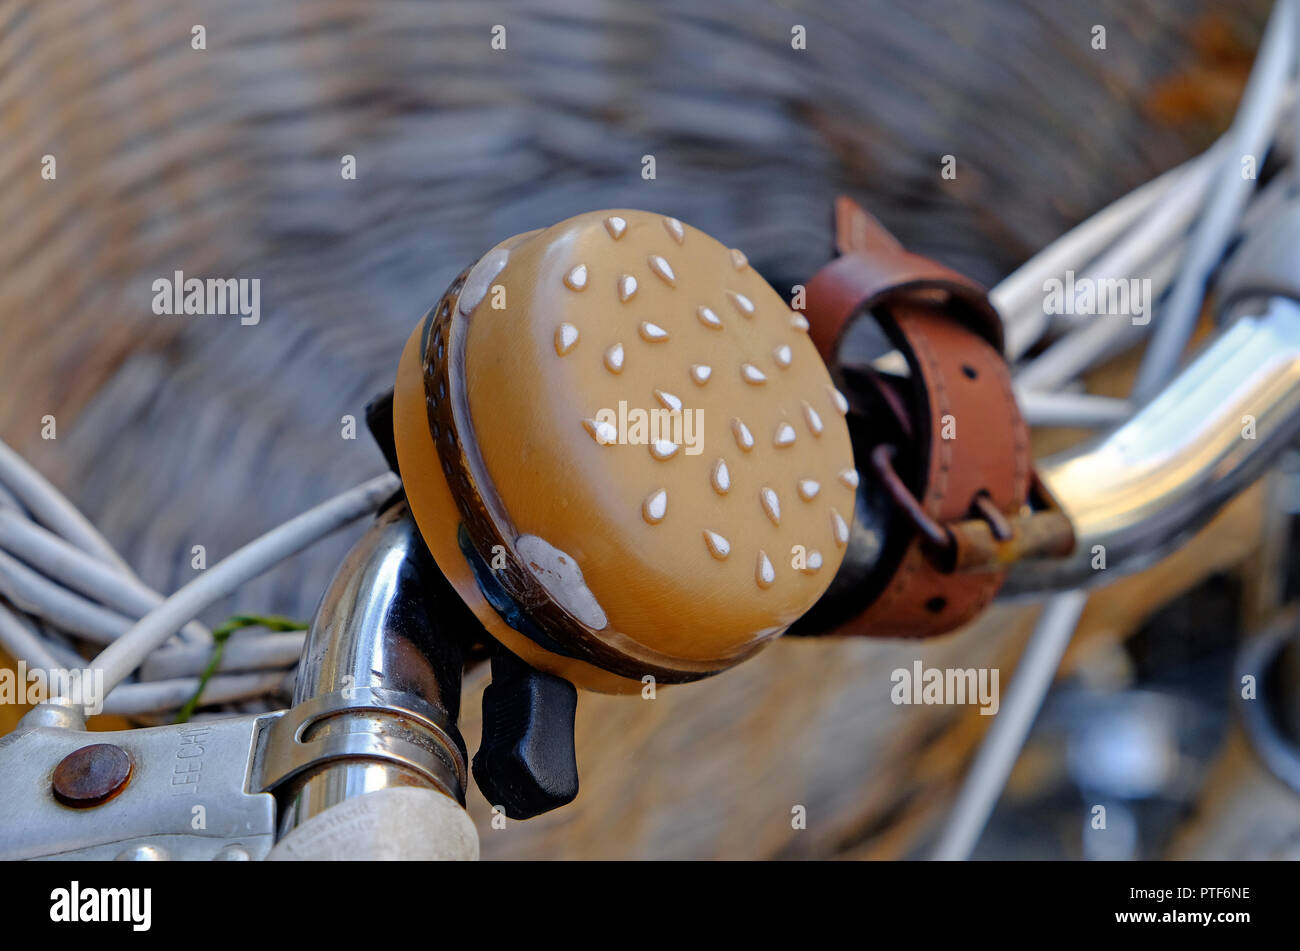 burger style bicycle bell on cycle handlebars - Stock Image